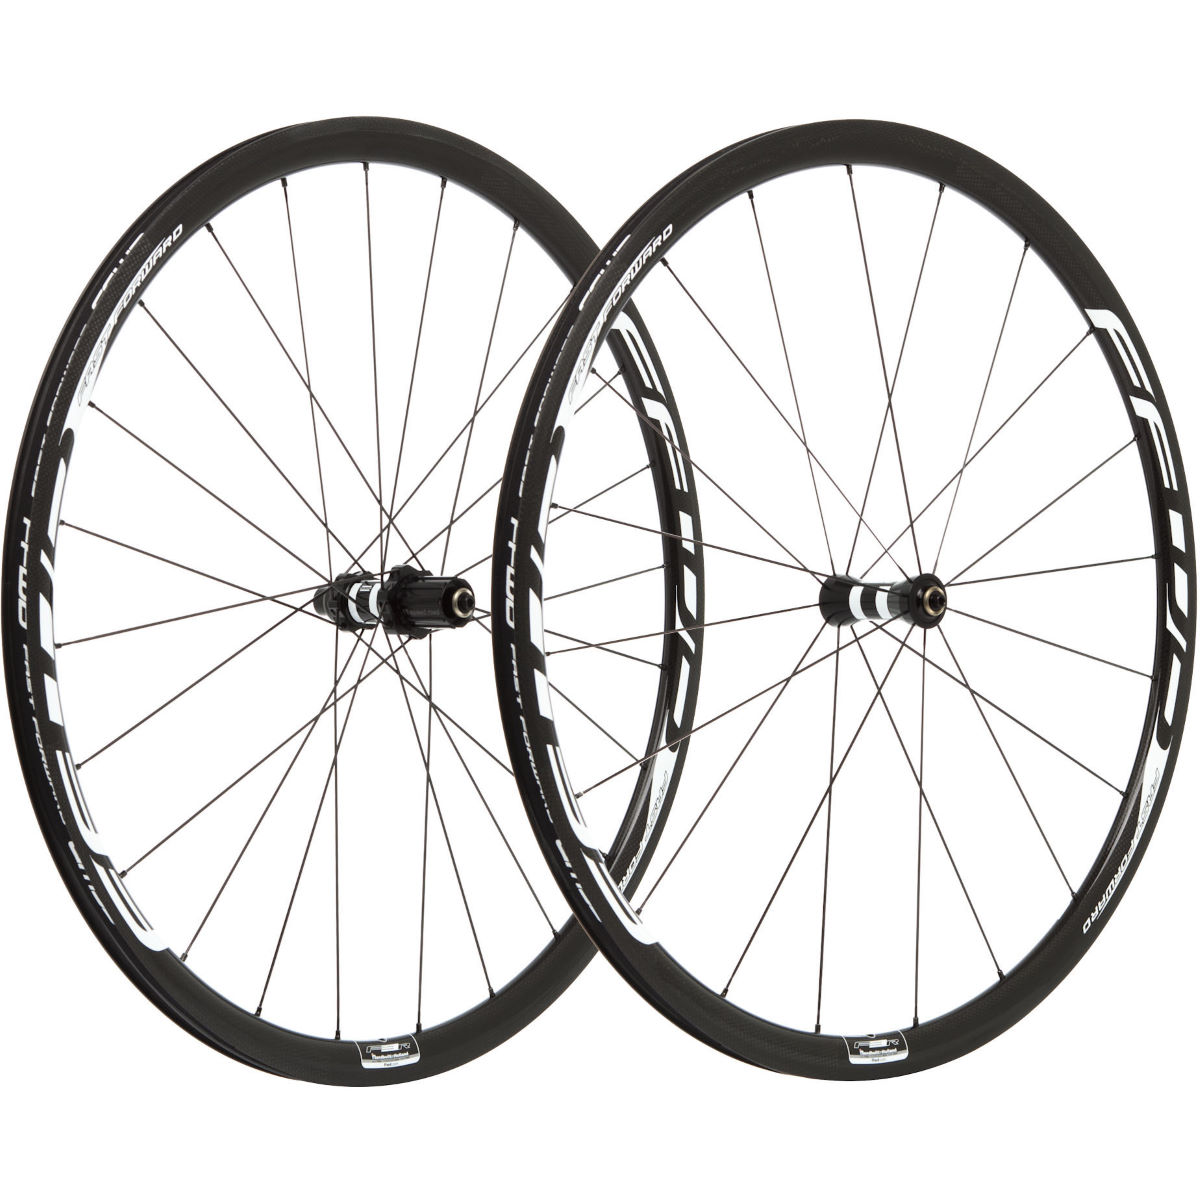 Image of Paire de roues Fast Forward F3R FCC SP (carbone, 30 mm) - Shimano 700c